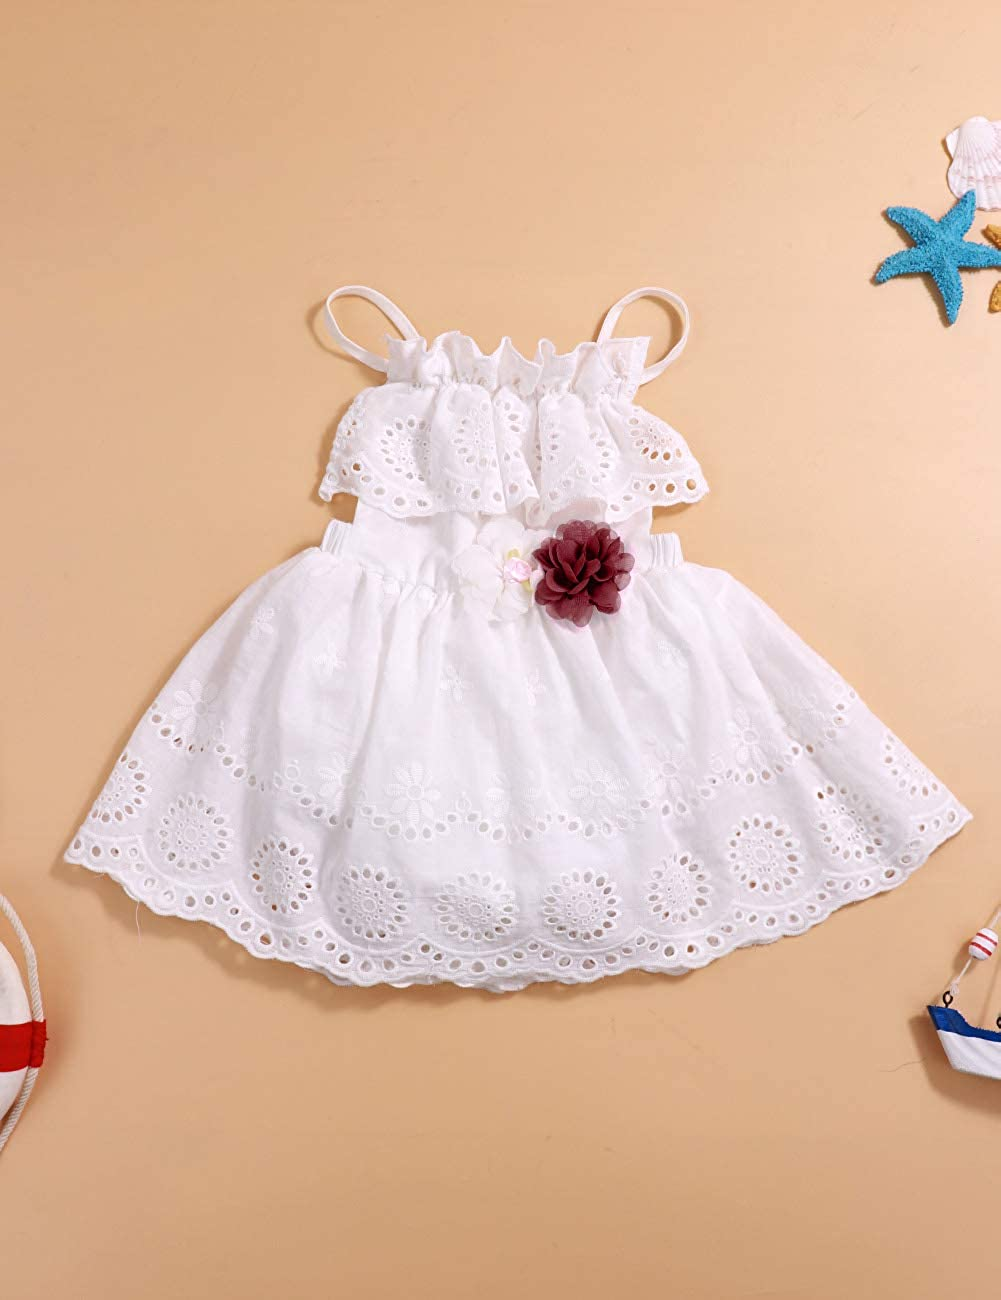 Newborn Baby Girl Clothes Ruffle Sleeveless Lace Dress with Red Flower Outfit Skirt Sets White, 6-12 Months